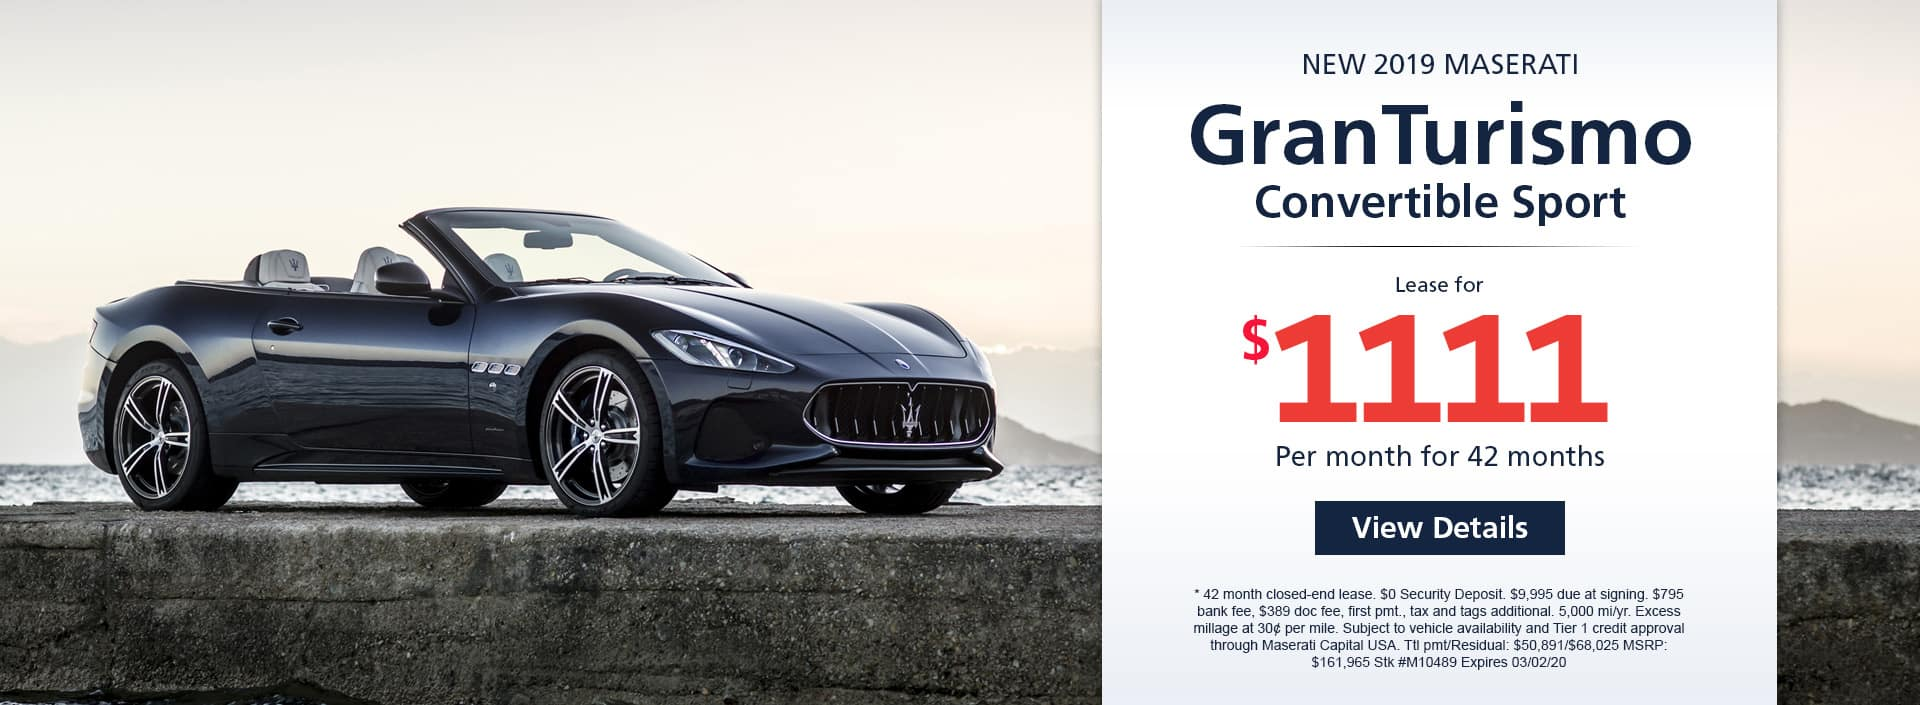 Lease a new 2019 Maserati GranTurismo Convertible Sport for $1,111 a month for 42 months. Or get special 0% APR financing for up to 60 months or 0% APR financing up to 84 months